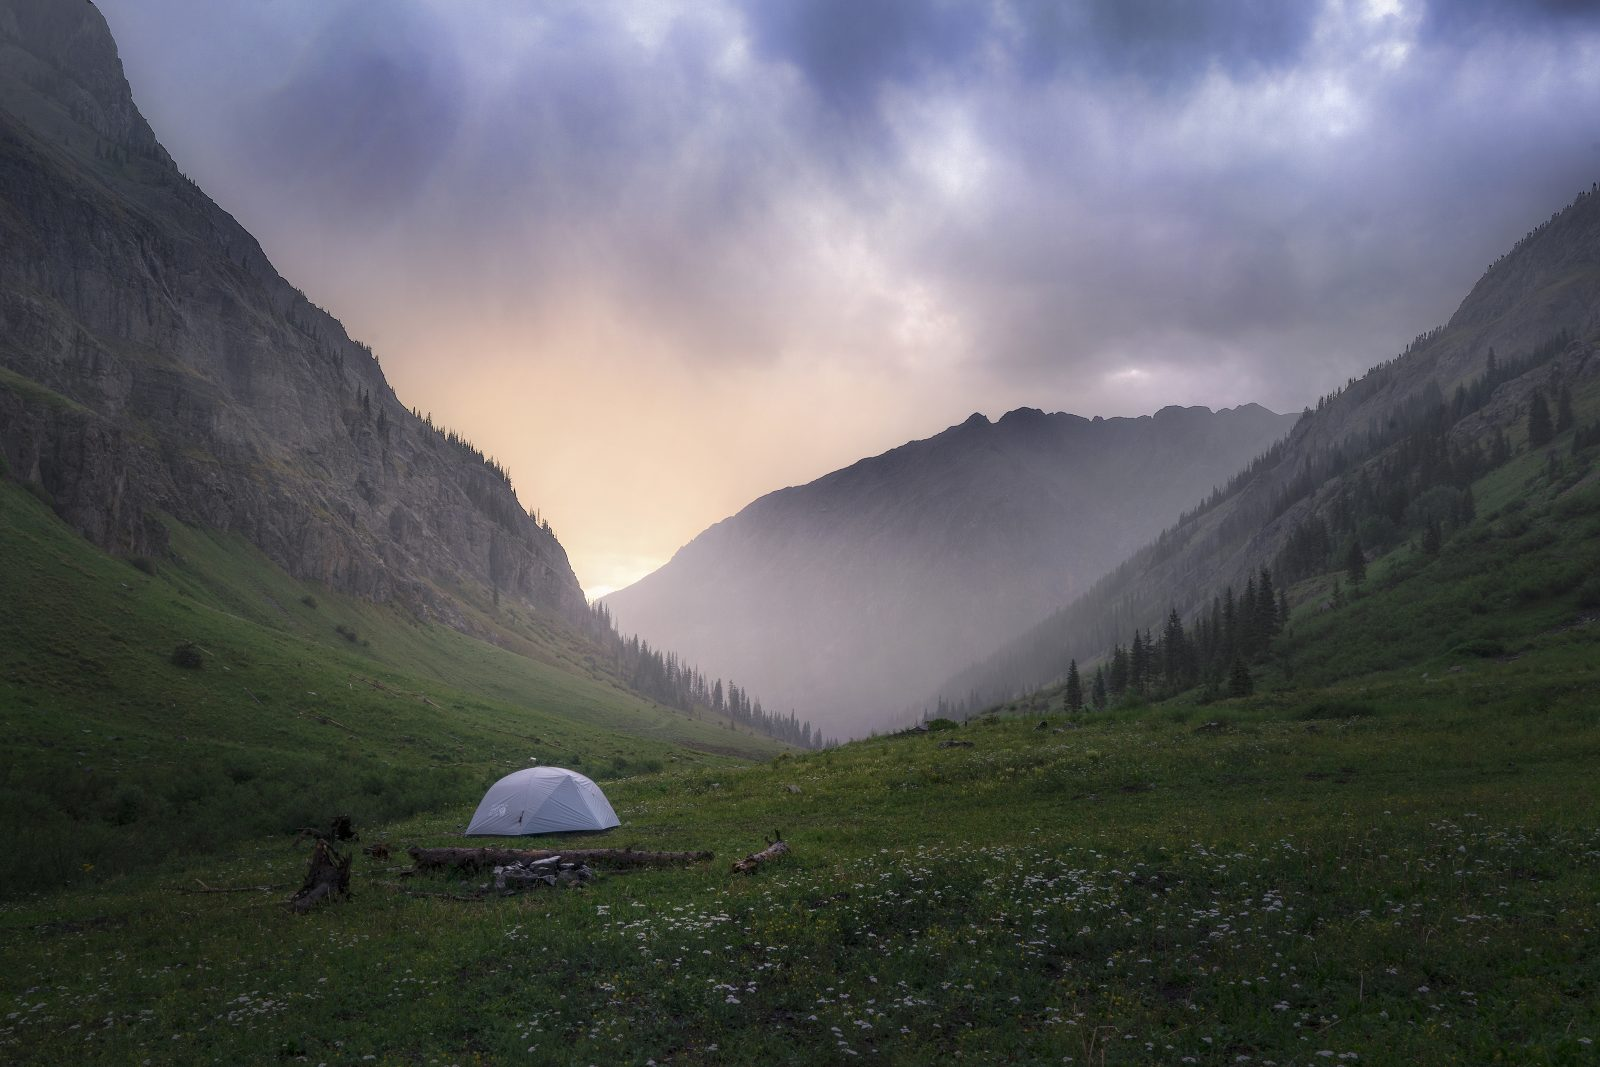 Camping in the San Juans